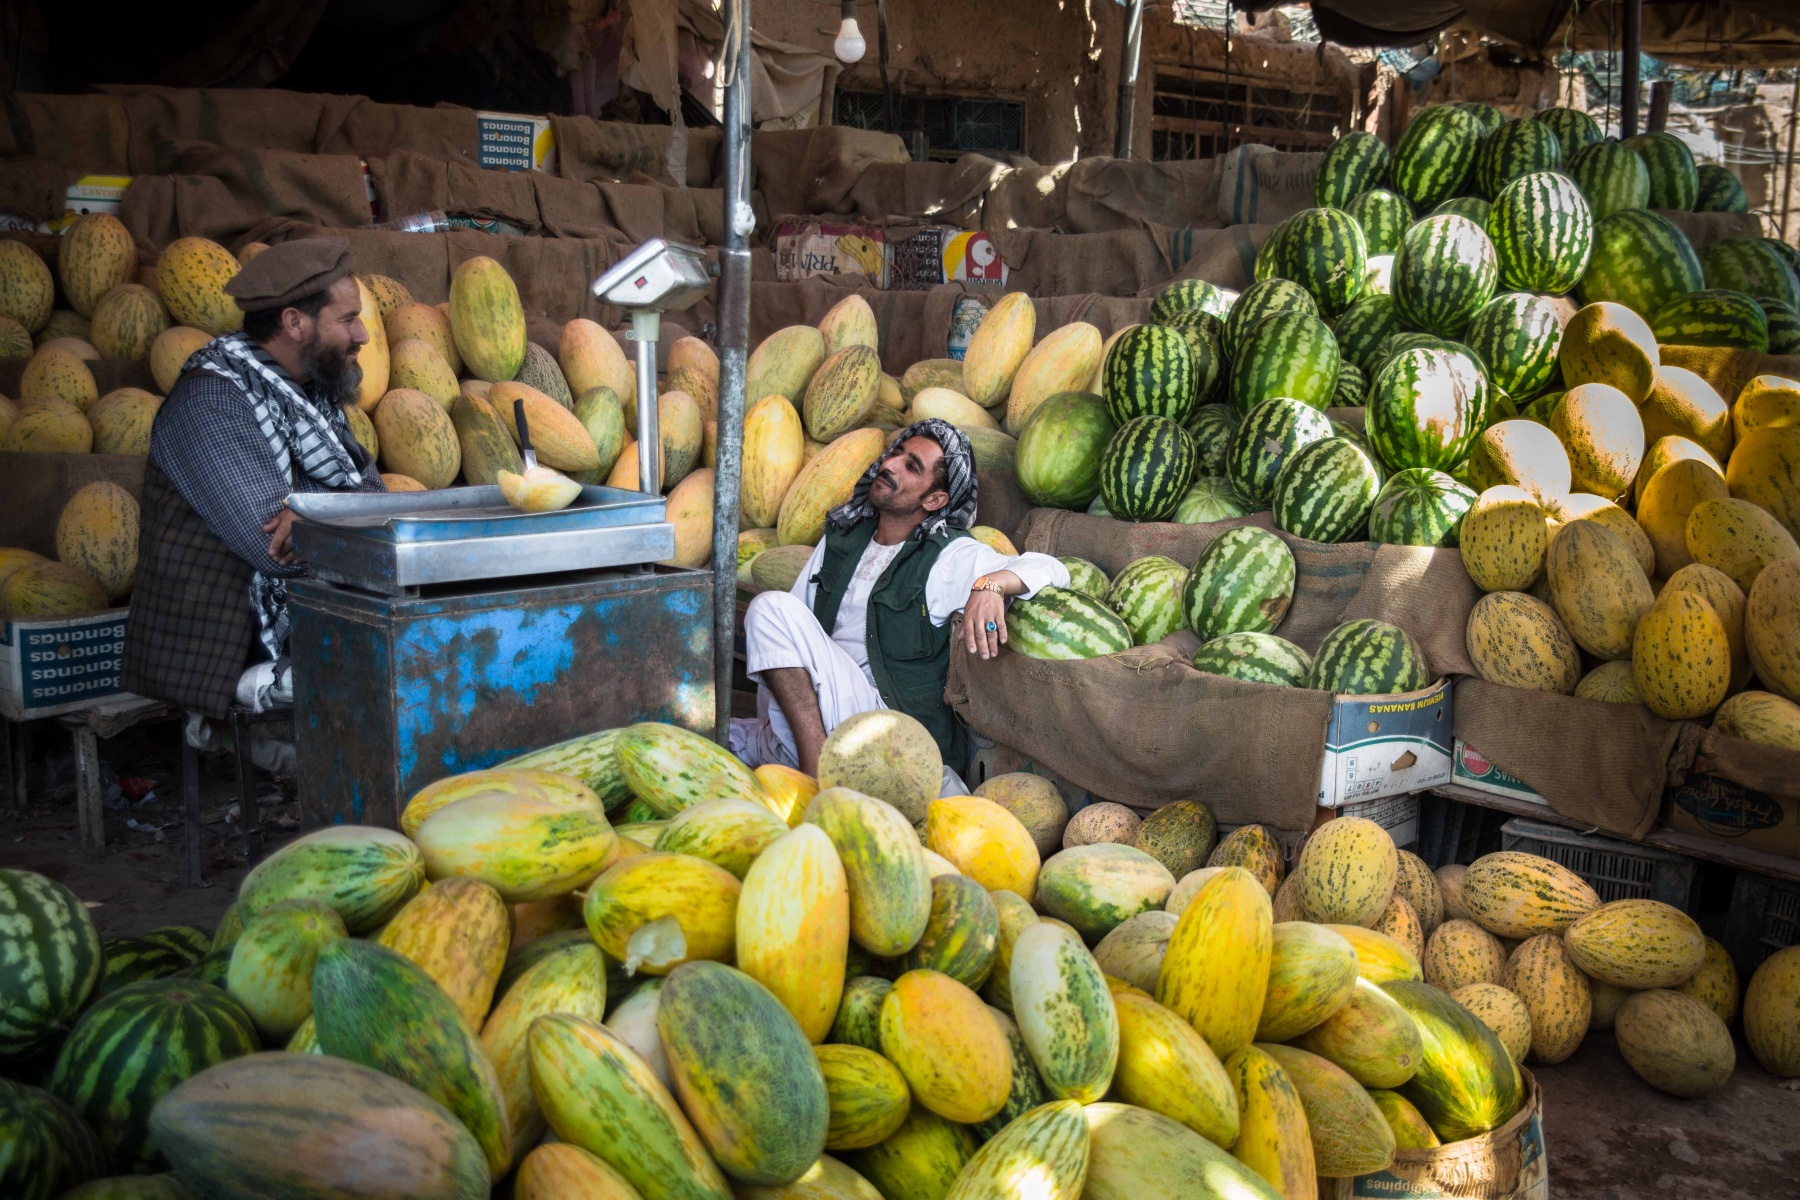 Daily life on a fruit market in Herat